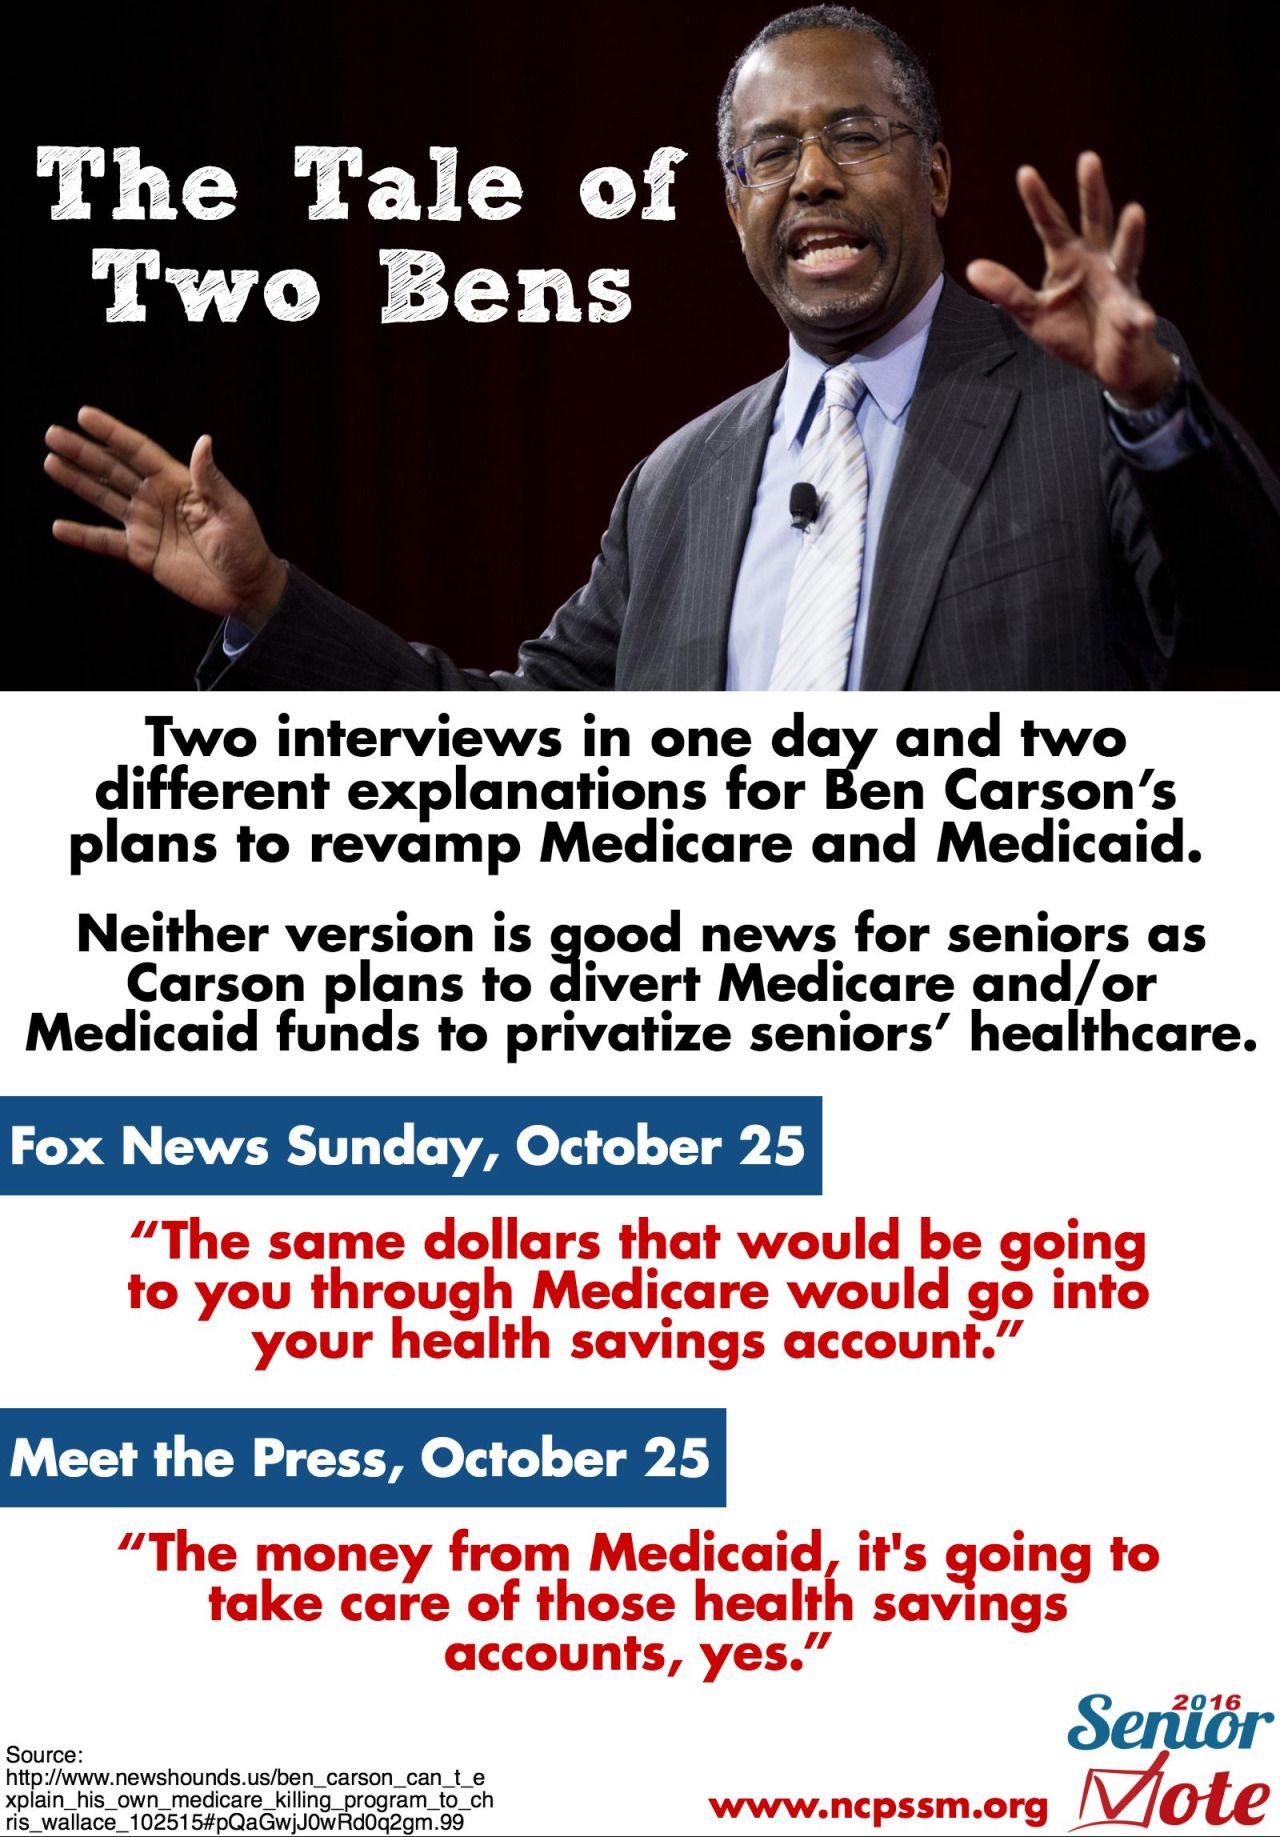 Dr. Ben Carson claims he's not like the other GOP